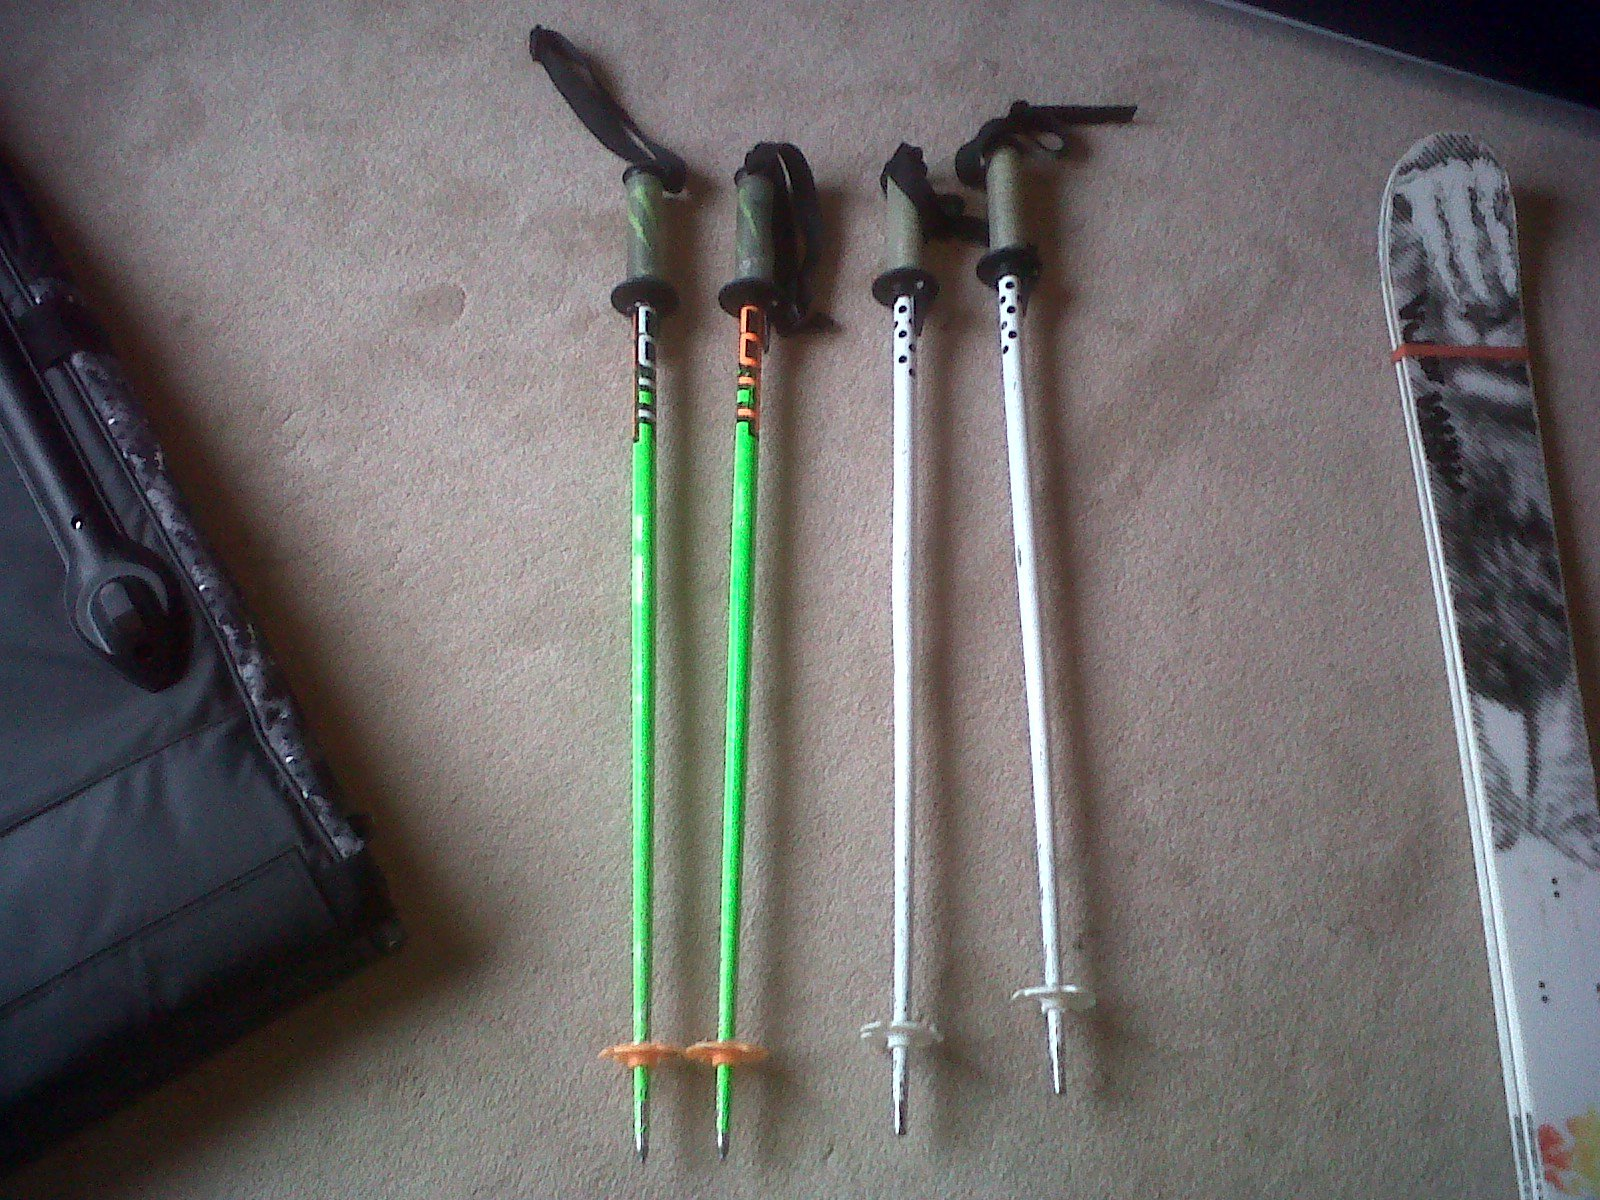 Scott poles for sale, check thread